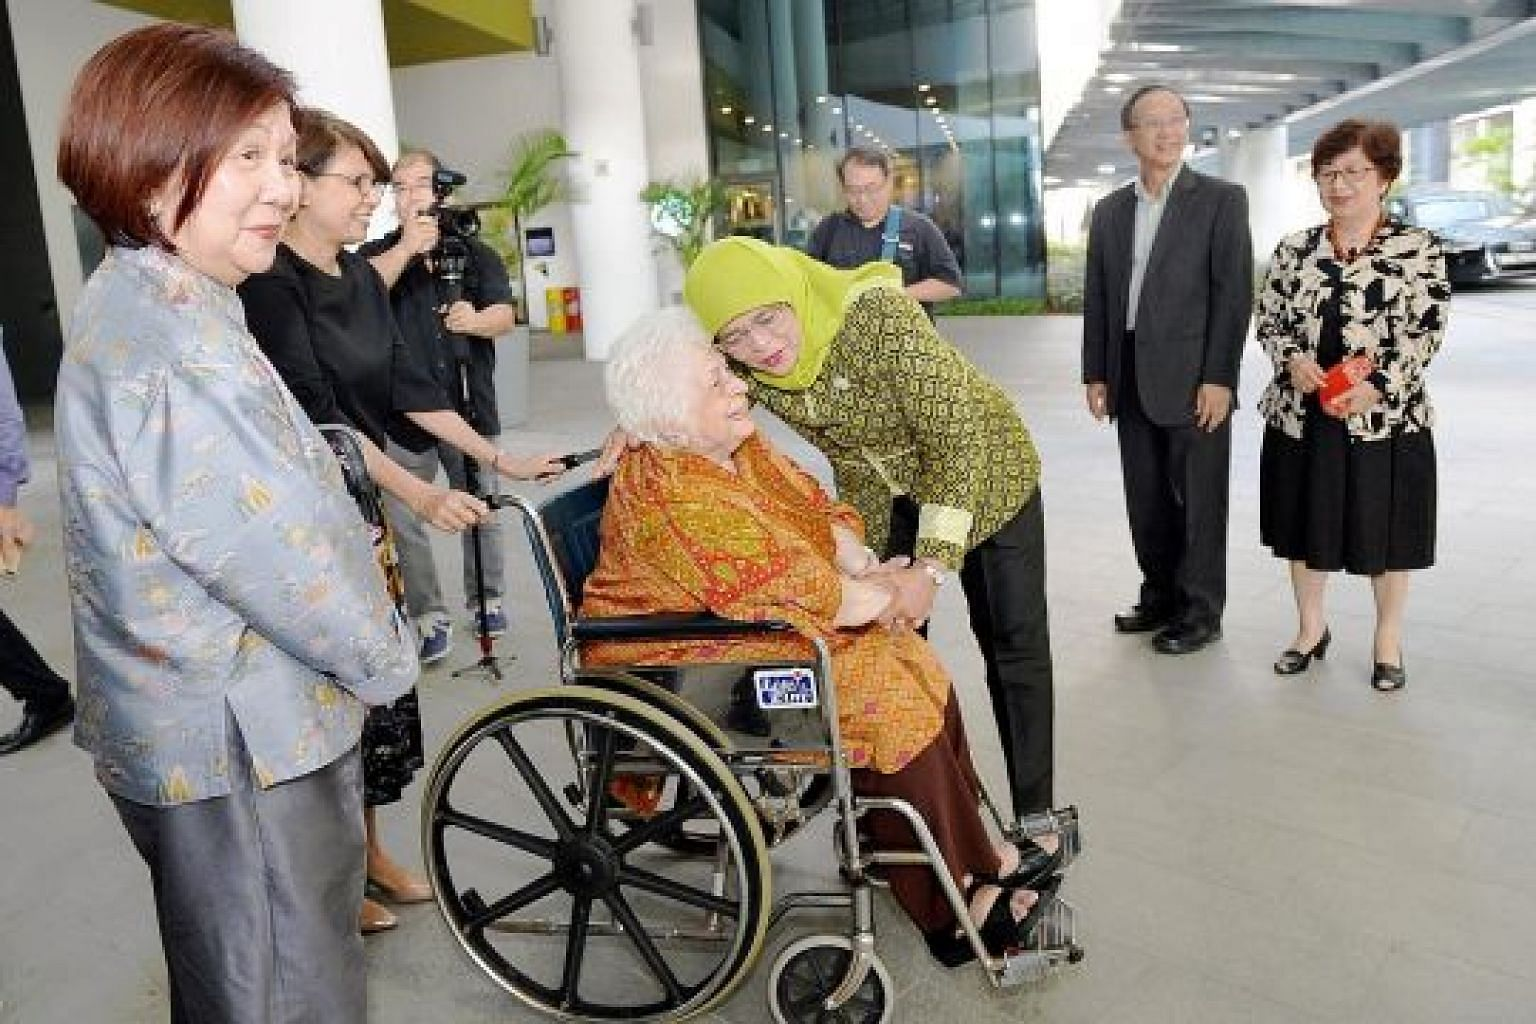 President Halimah Yacob greeting Mrs Urmila Nathan, widow of former president S R Nathan, at the Singapore University of Social Sciences yesterday, as Mrs Nathan's guest, businesswoman Jennie Chua (left), university president Cheong Hee Kiat (second